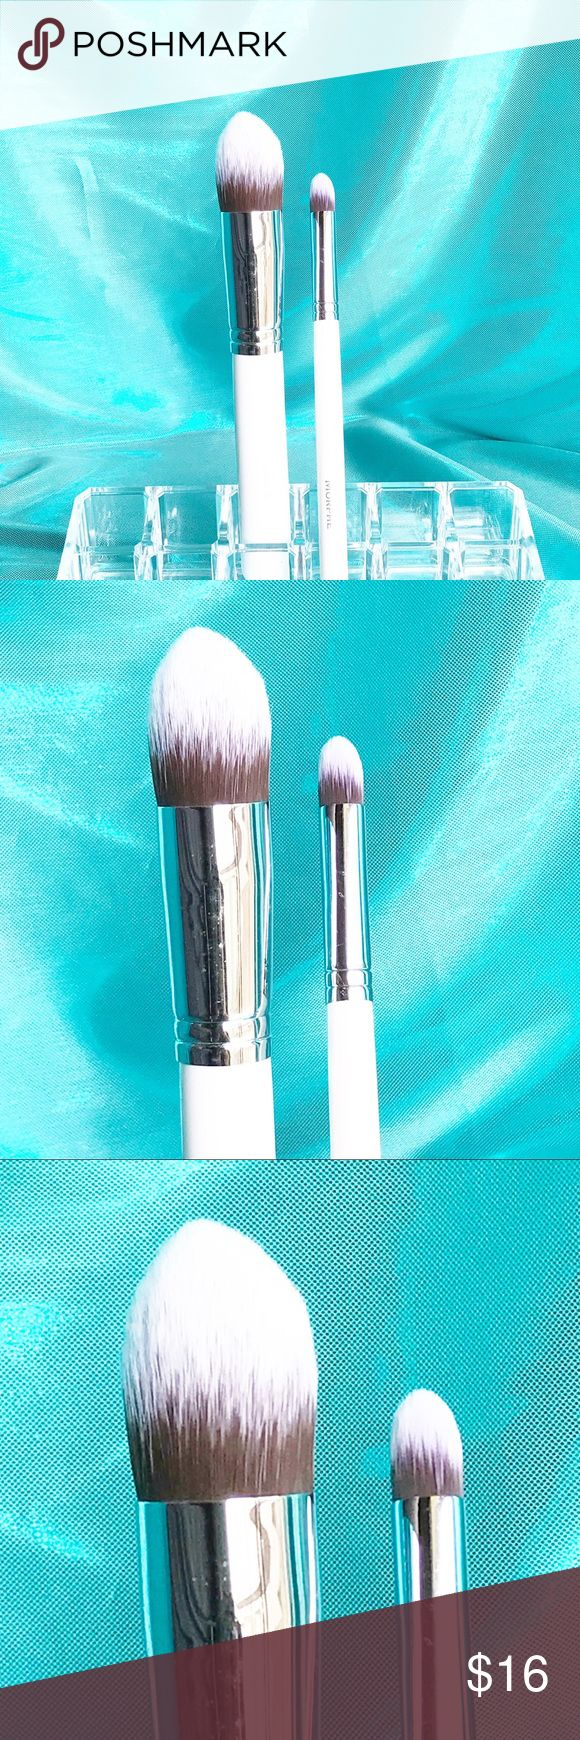 Morphe Contour Brush Set Morphe Contour Brush Set features super soft bristles and includes a pointed contour buffer and a mini pointed buffer. Check out my other Morphe listings to bundle and save! Morphe Makeup Brushes & Tools